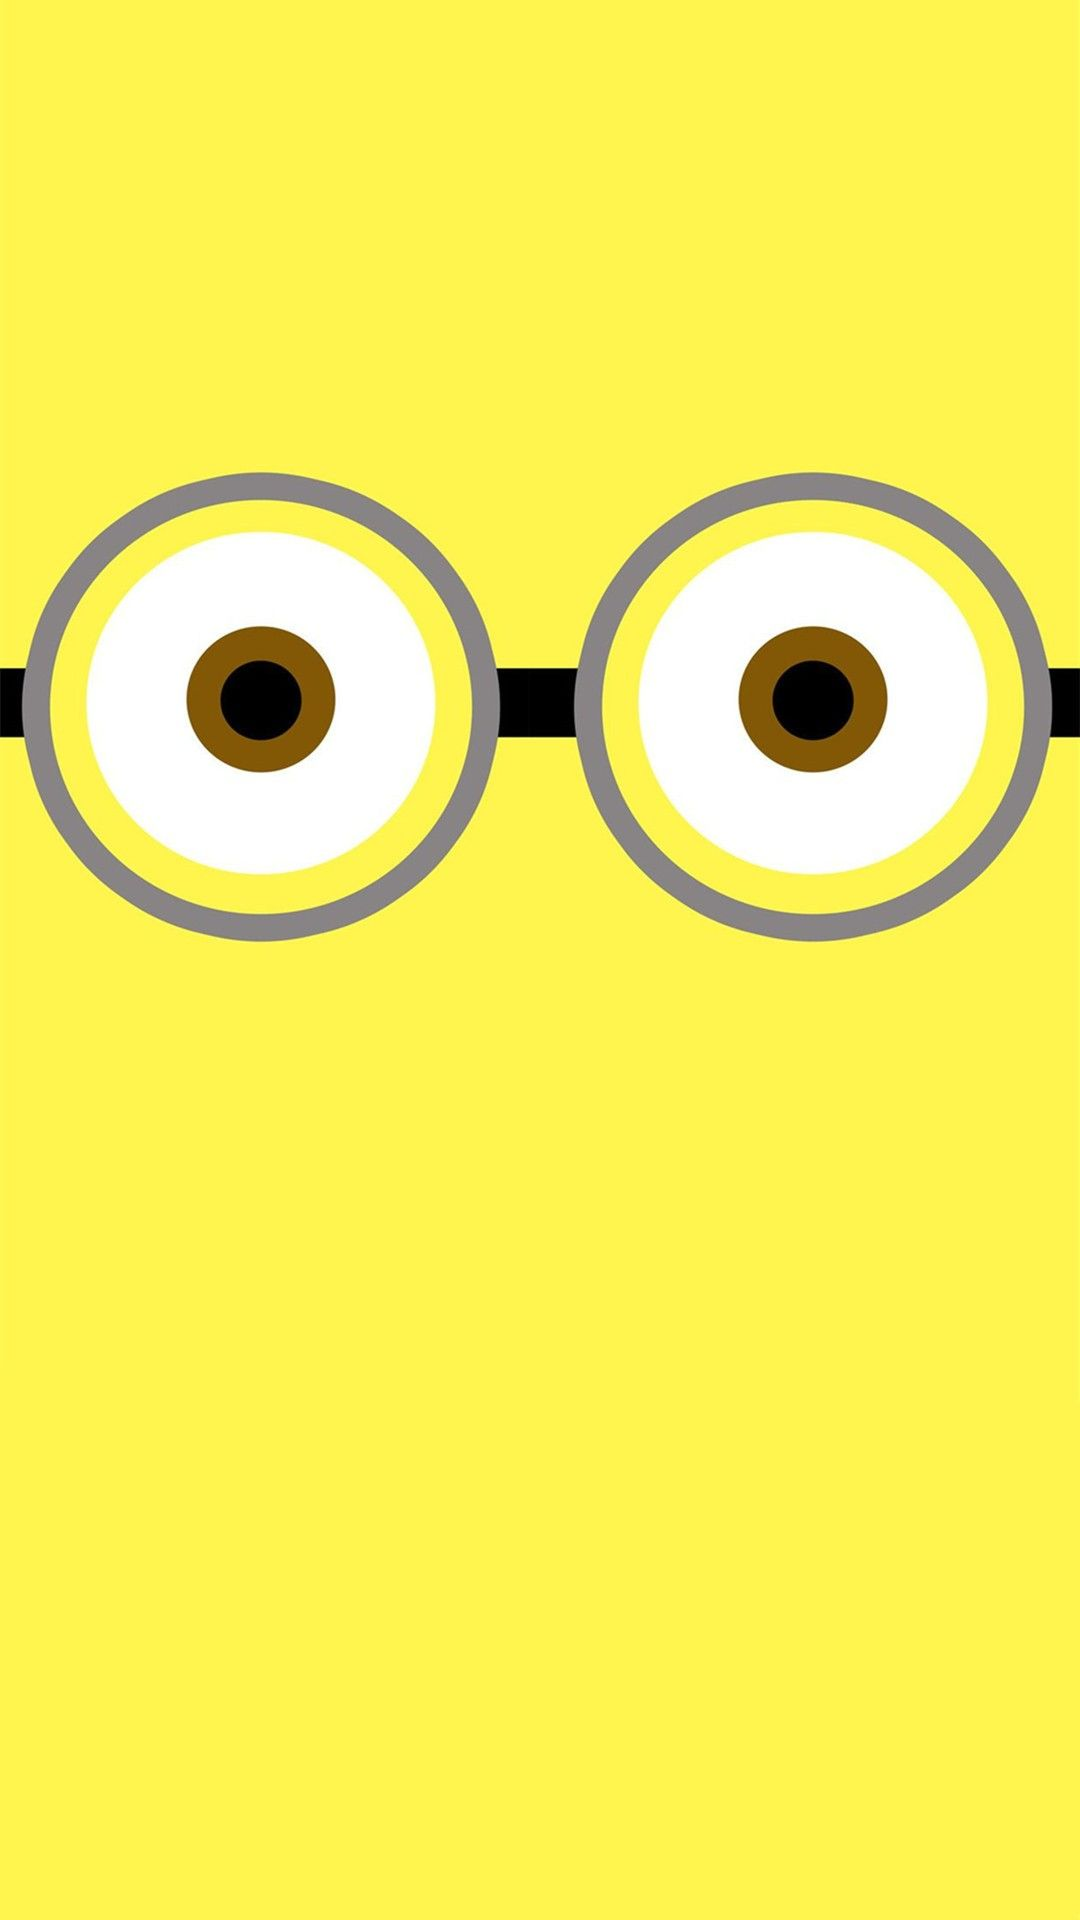 Cutest big eyes minion of despicable me iphone 6 plus wallpaper 2014 halloween iphone 6 plus wallpaper